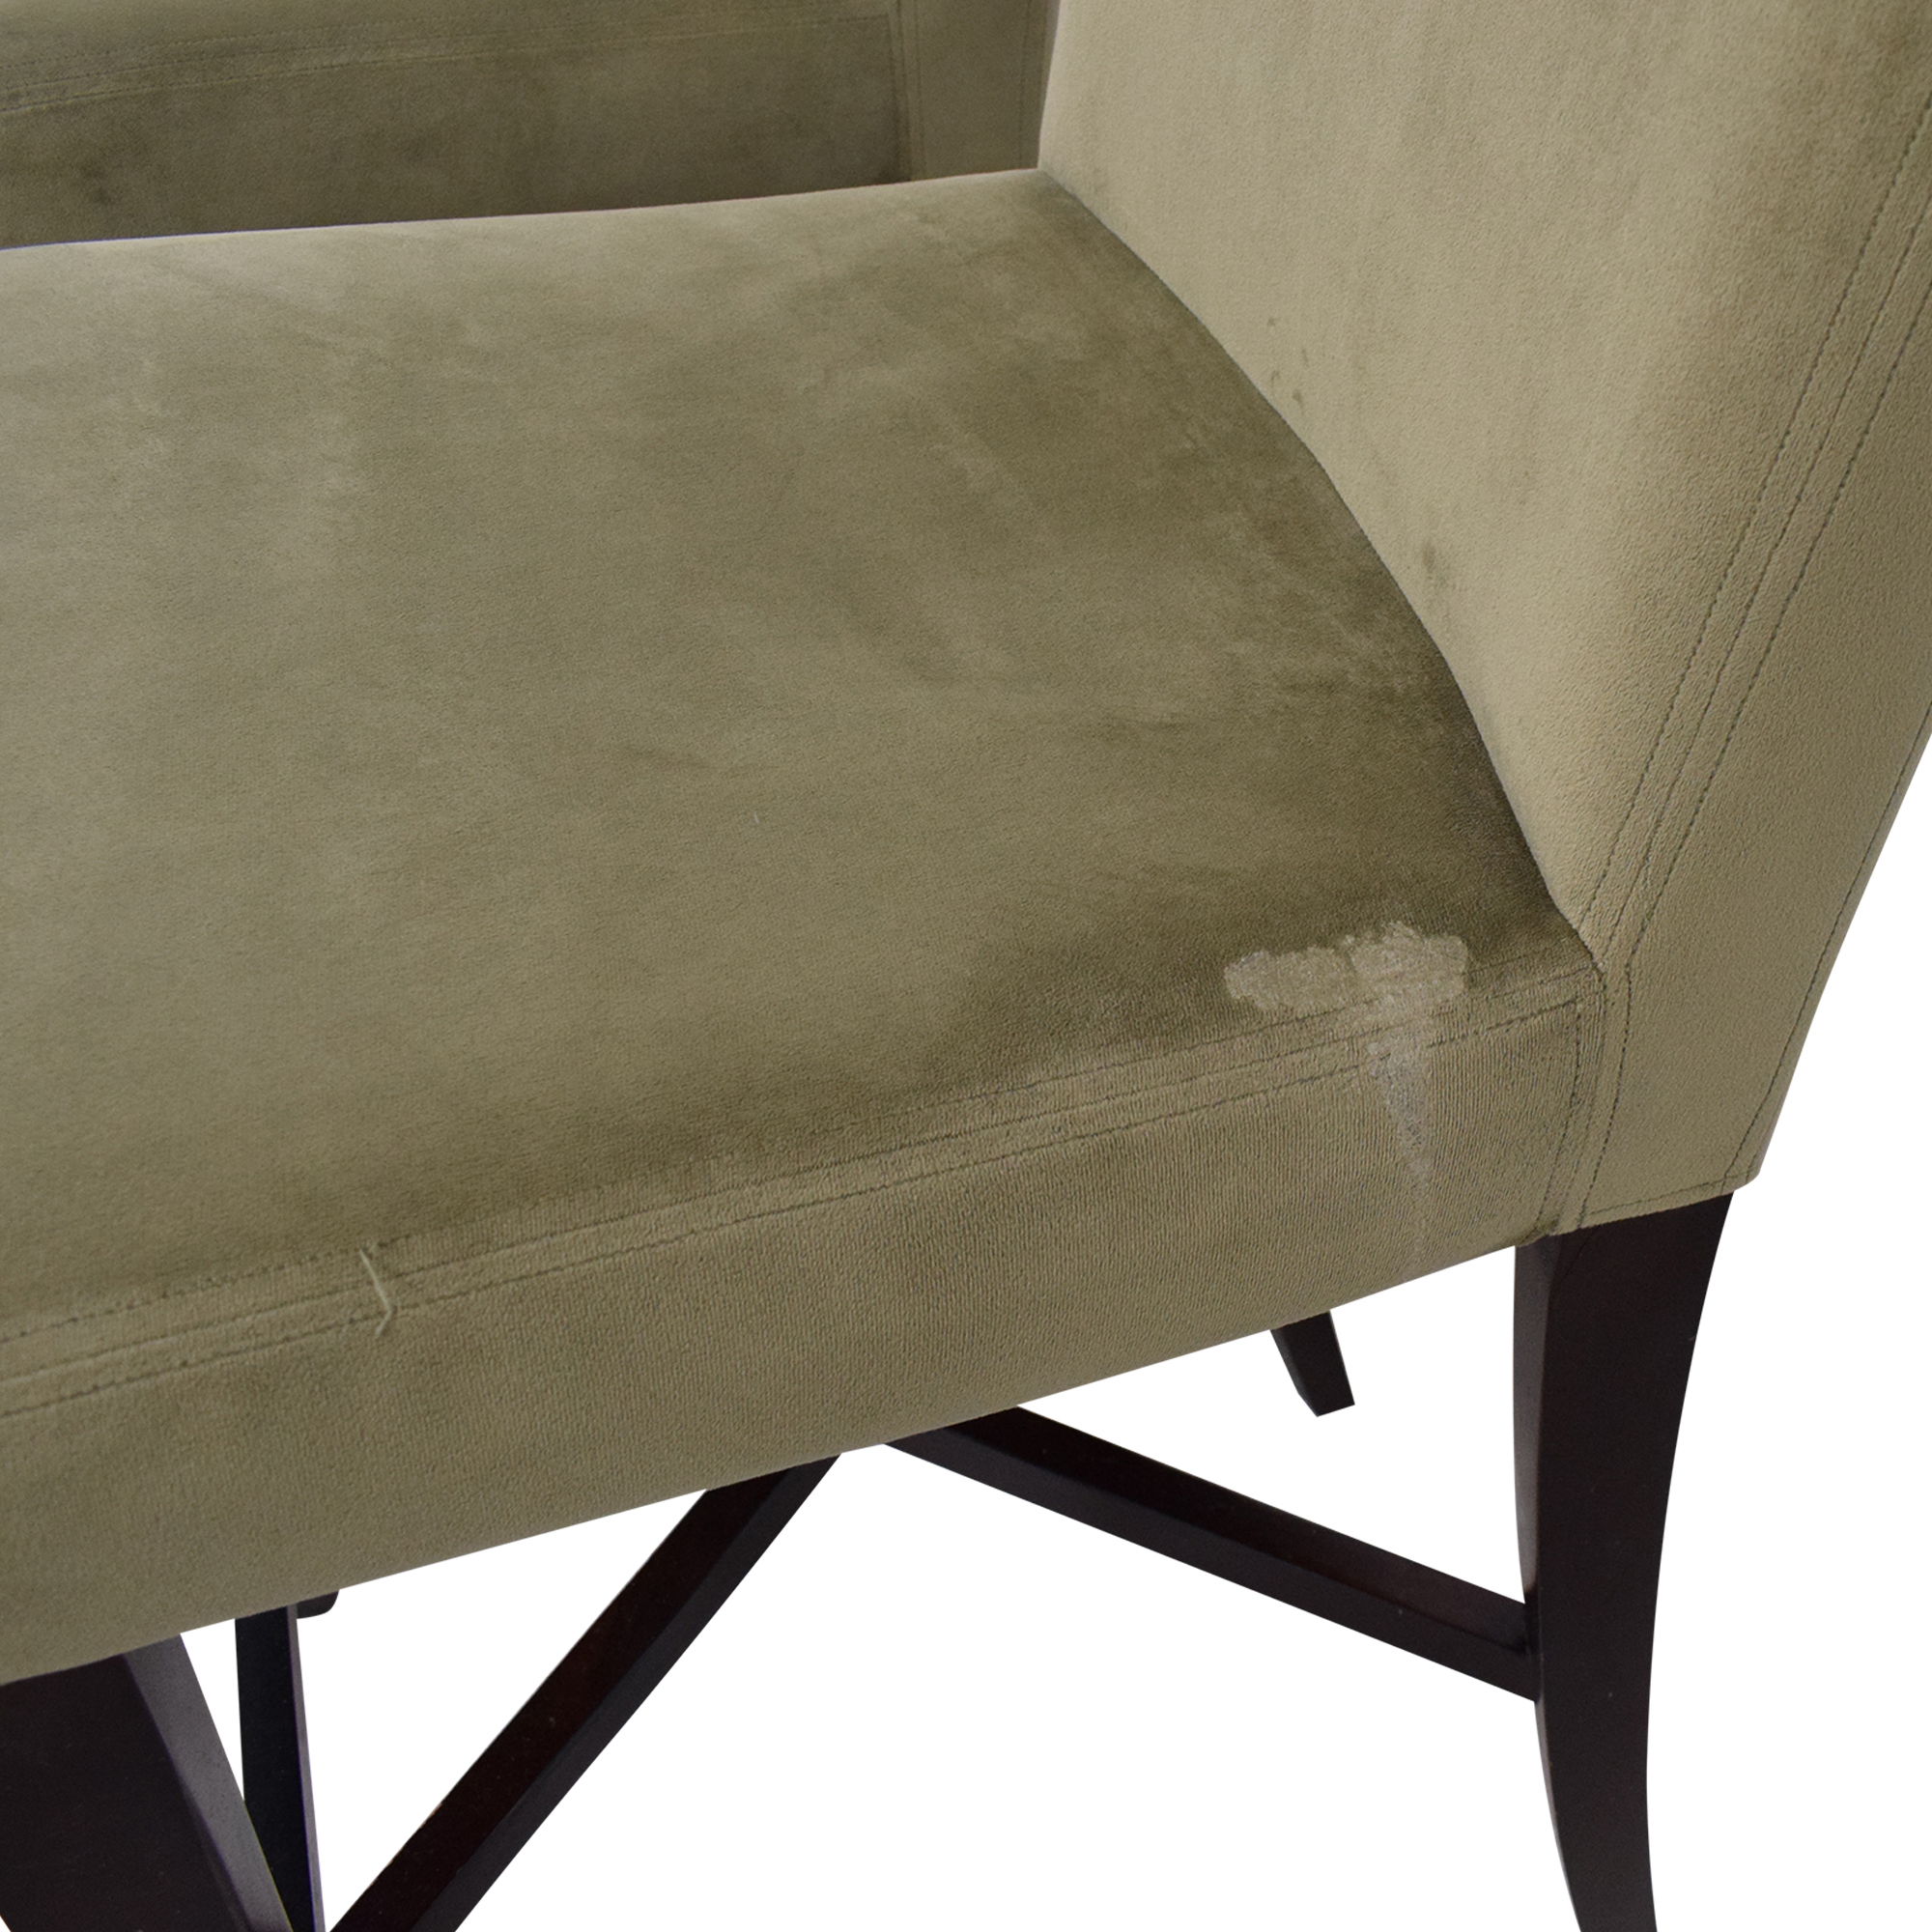 buy Crate & Barrel Upholstered Bar Stools Crate & Barrel Chairs